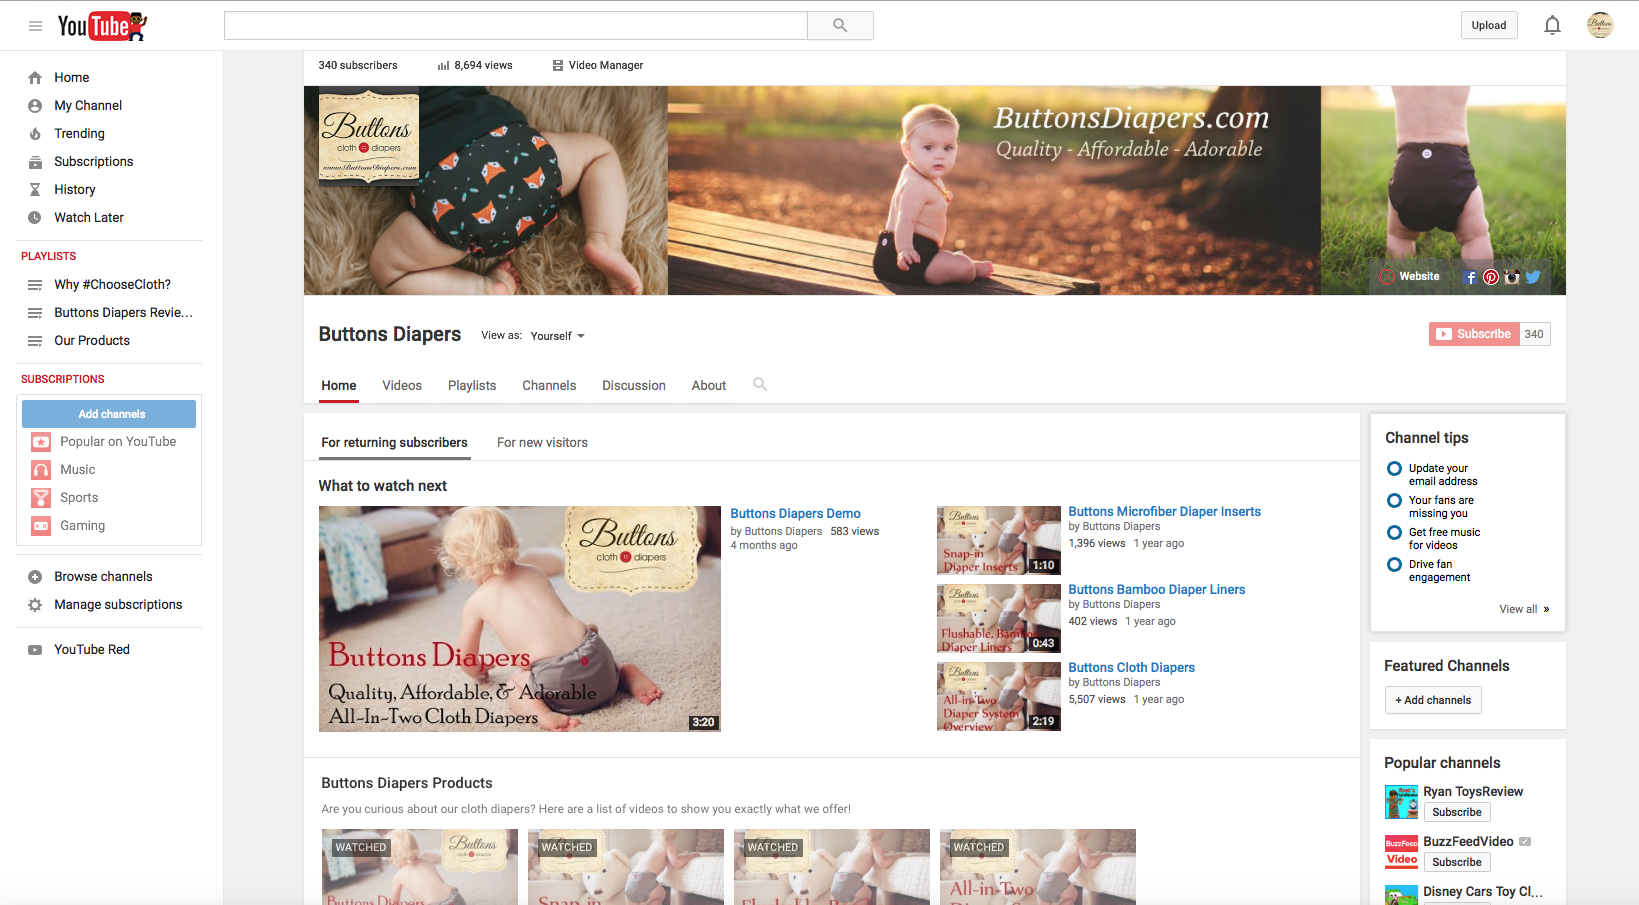 Buttons Diapers Youtube Page Redo